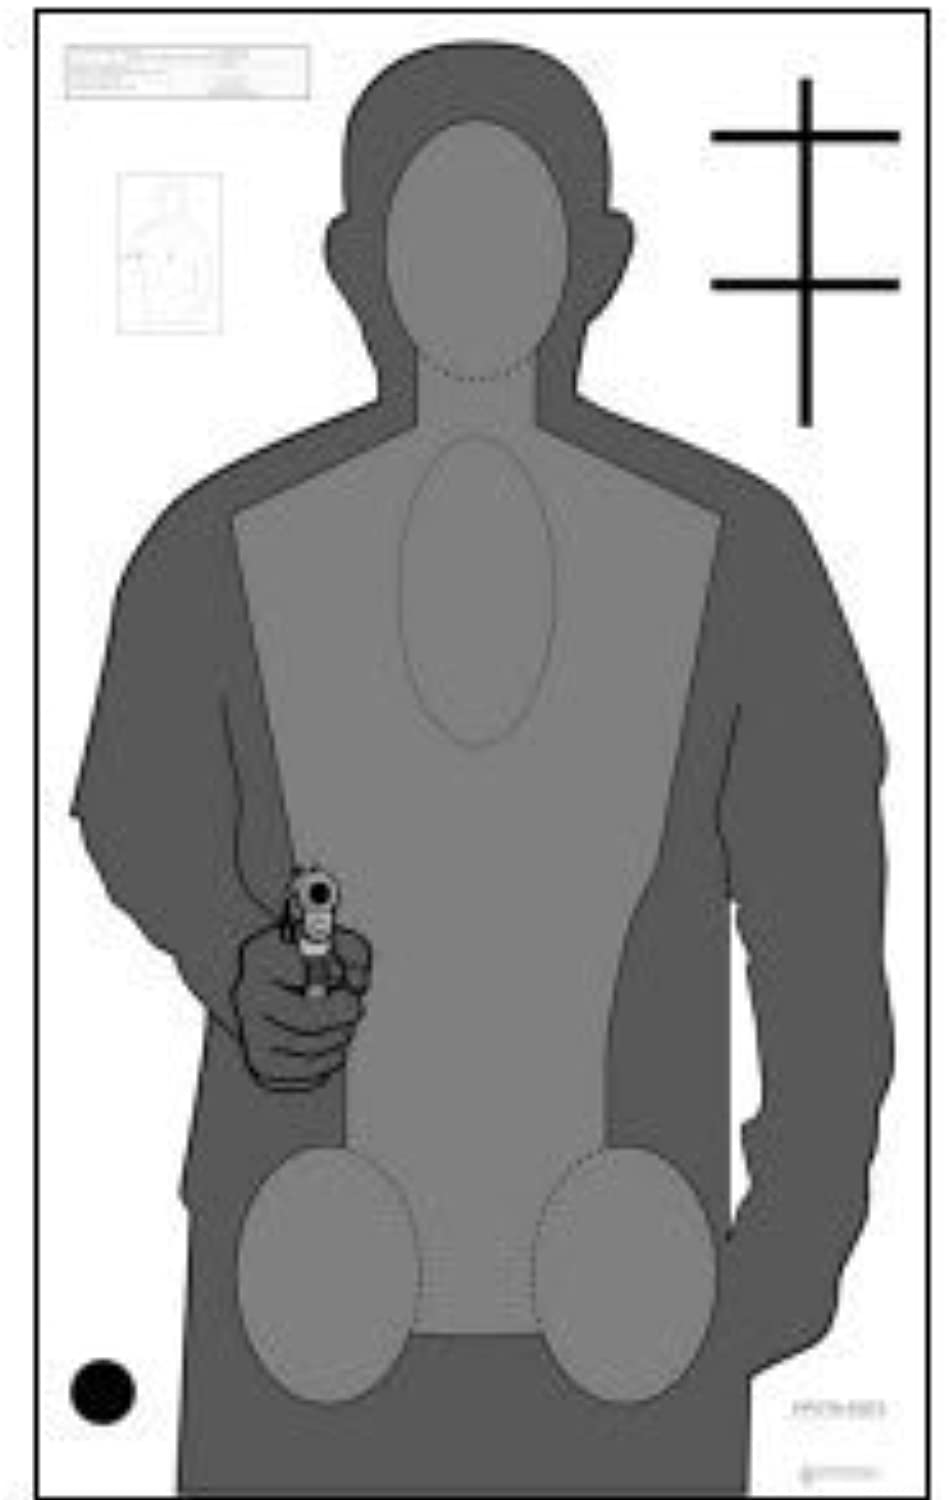 New 2010opota Qualifikation Target 50PACK BY LAW ENFORCEMENT Ziele